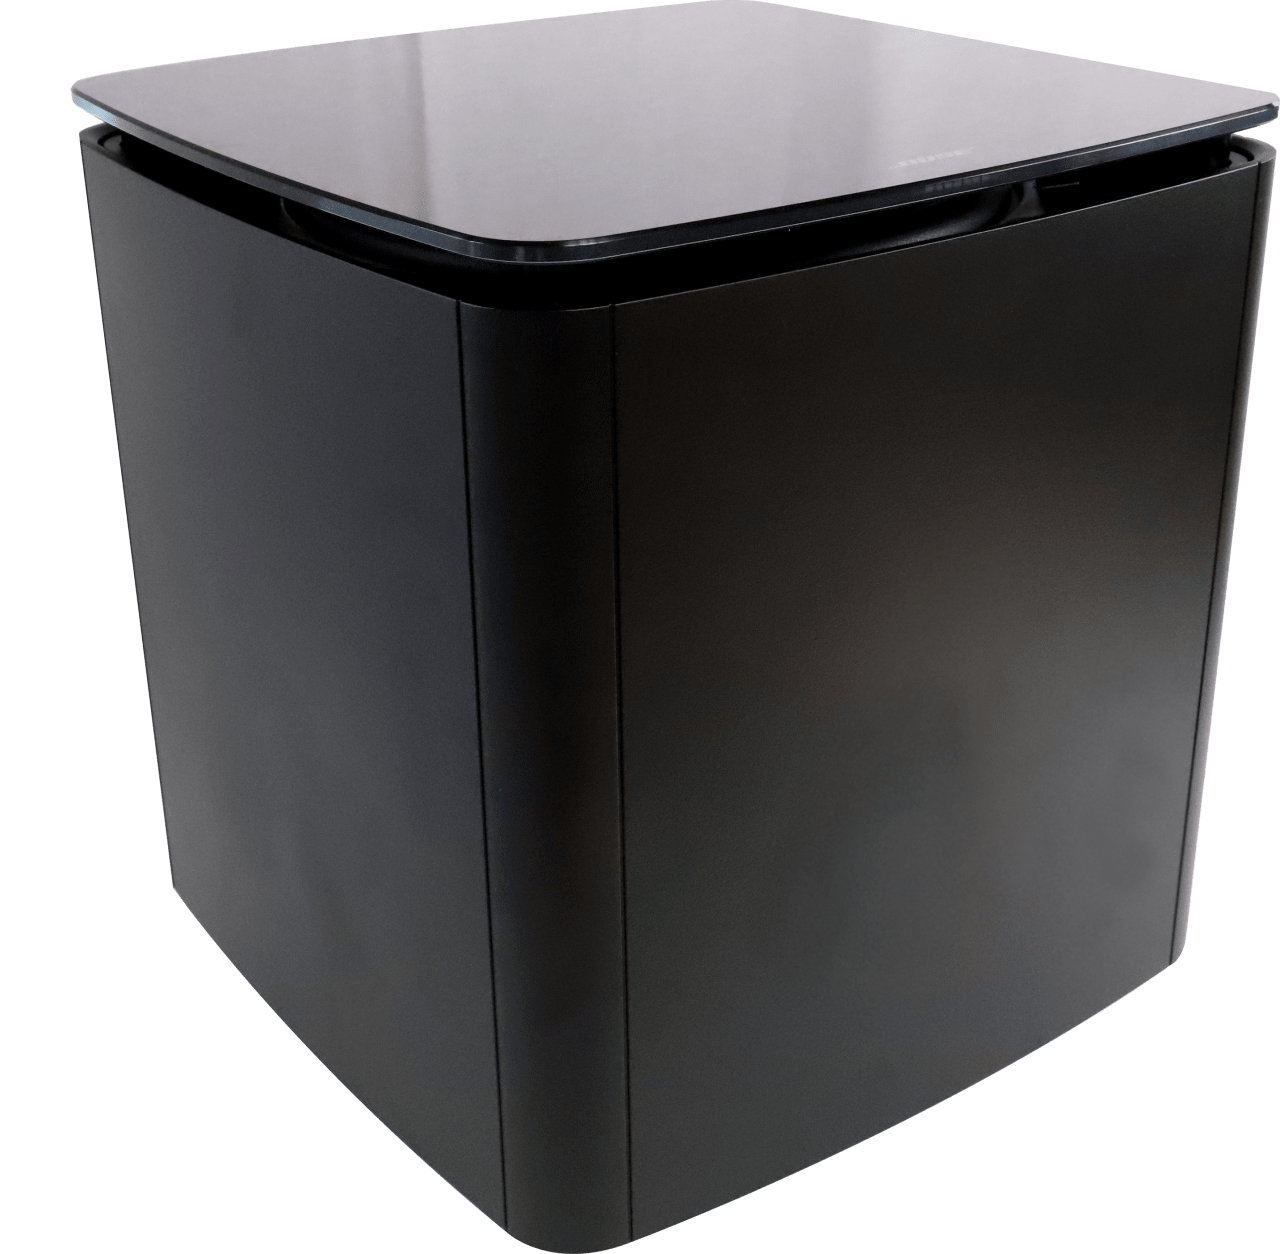 Black Bose Acoustimass 300 Subwoofer.1